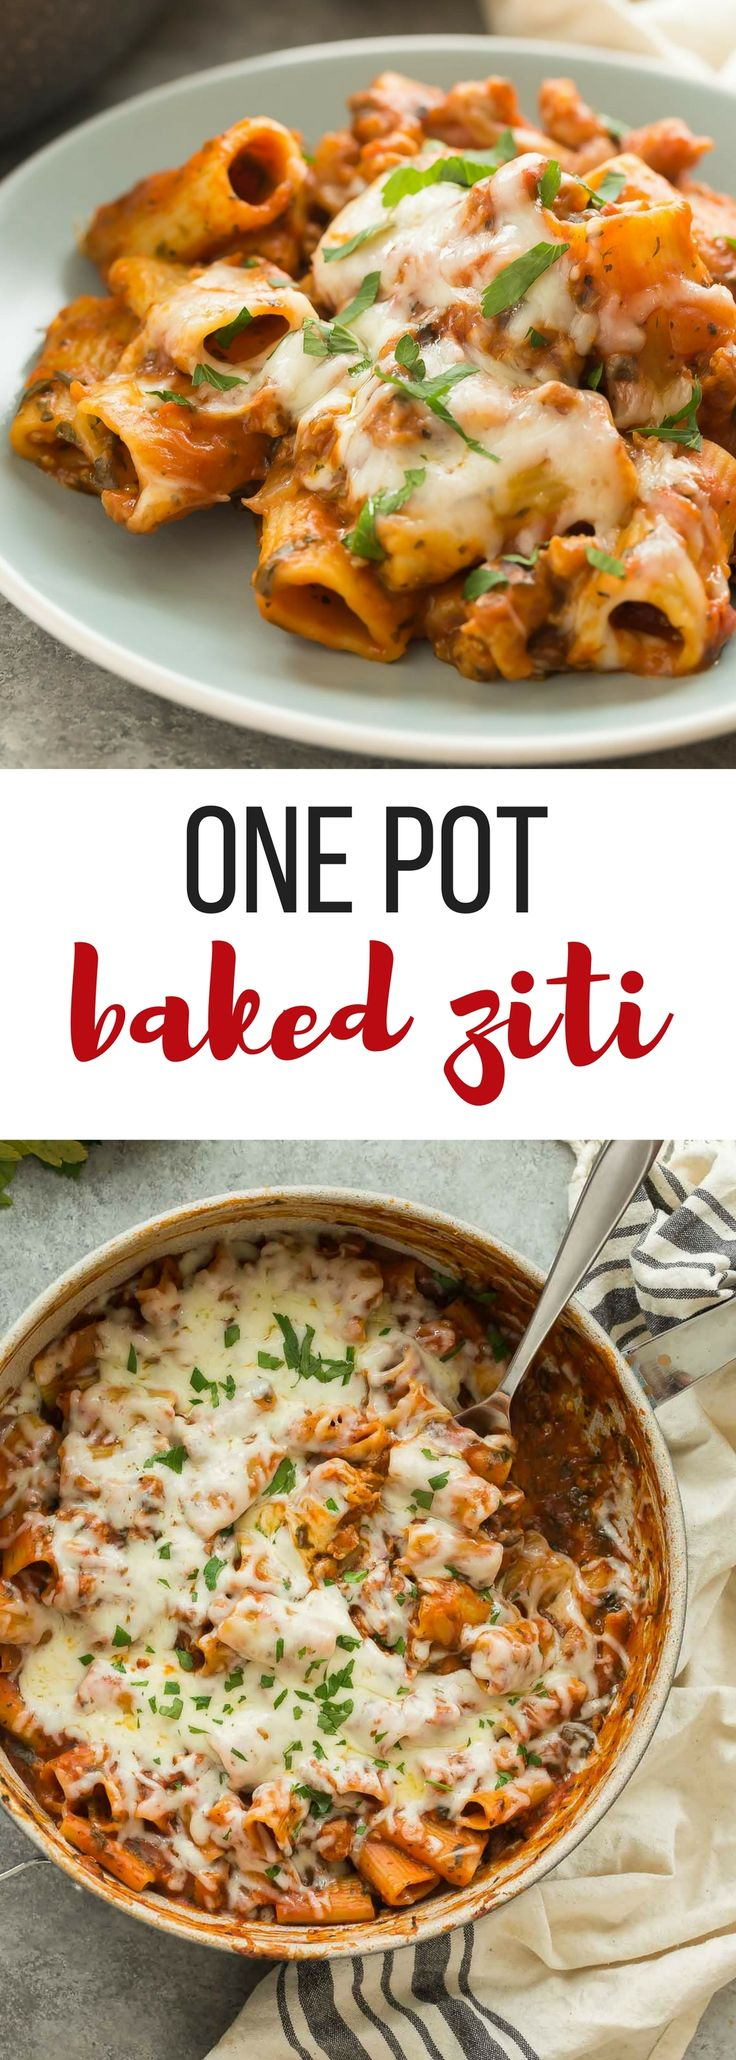 This One Pot Baked Ziti with Italian Sausage is full of flavor but easy on the dishes! It's made with turkey Italian sausage, spinach, tomato sauce and loaded with cheese -- the perfect weeknight dinner! Includes step by step recipe video. | easy recipe | easy dinner | healthy recipe | weeknight meal #onepot #onepan #onepotpasta